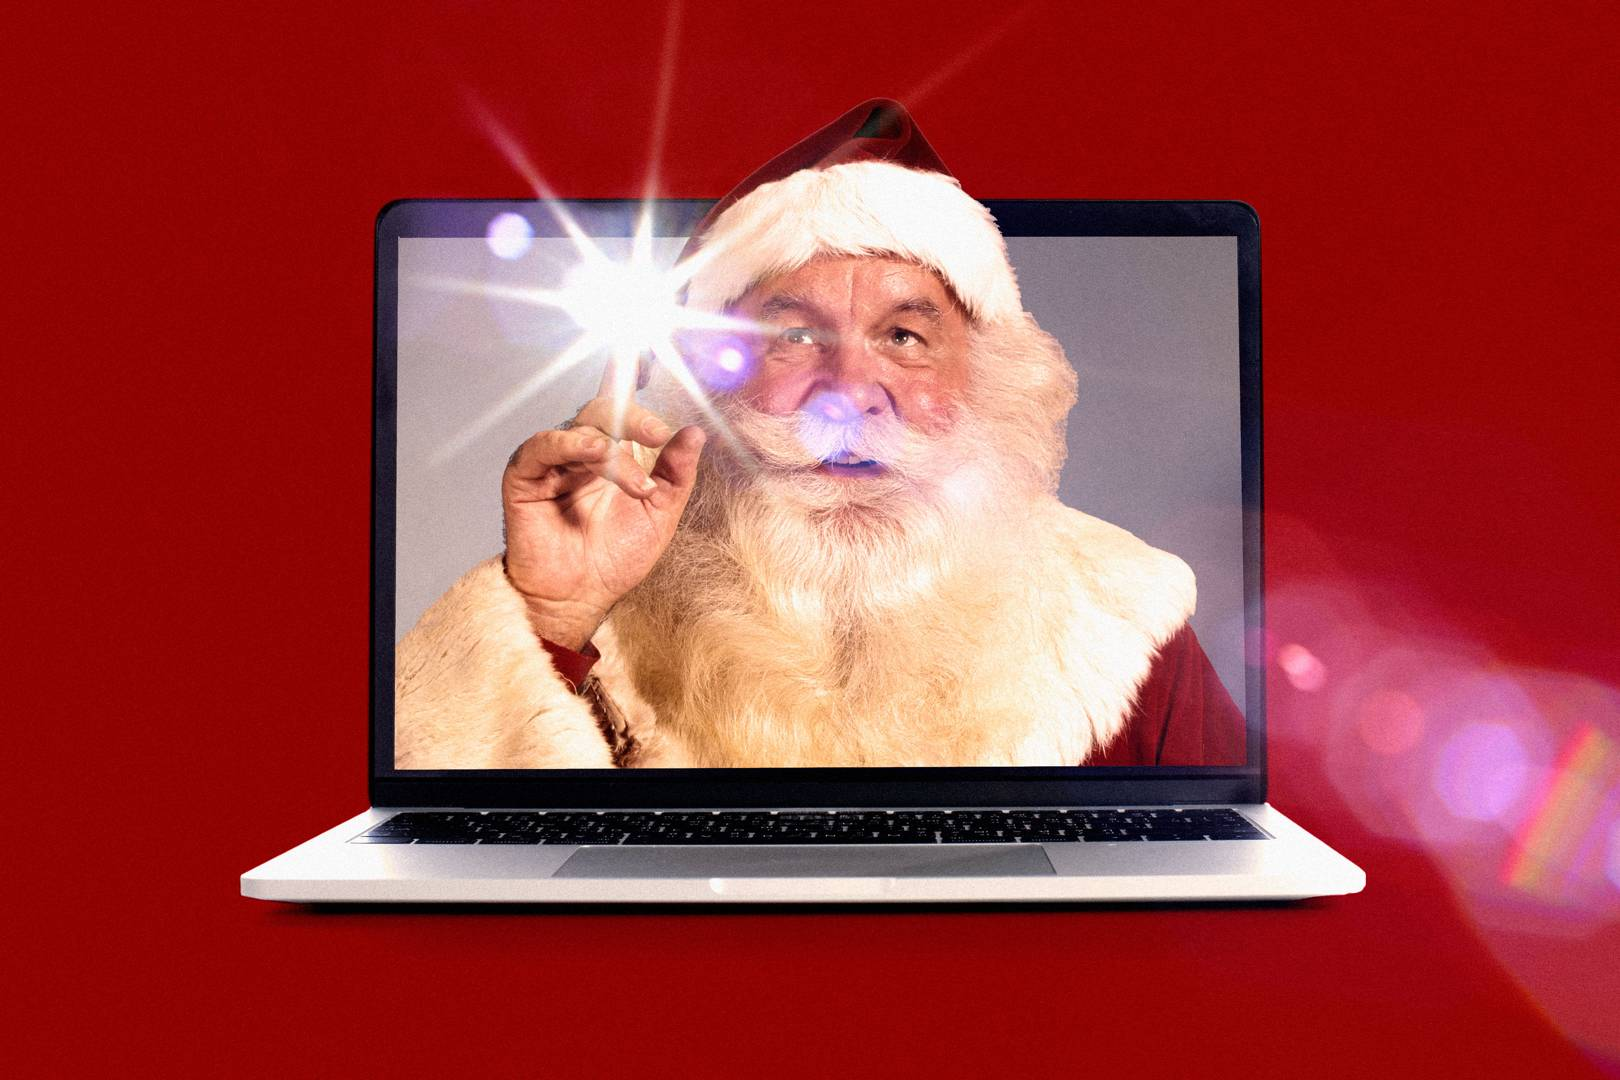 Zooming through the snow: Santas are adjusting to Christmas online